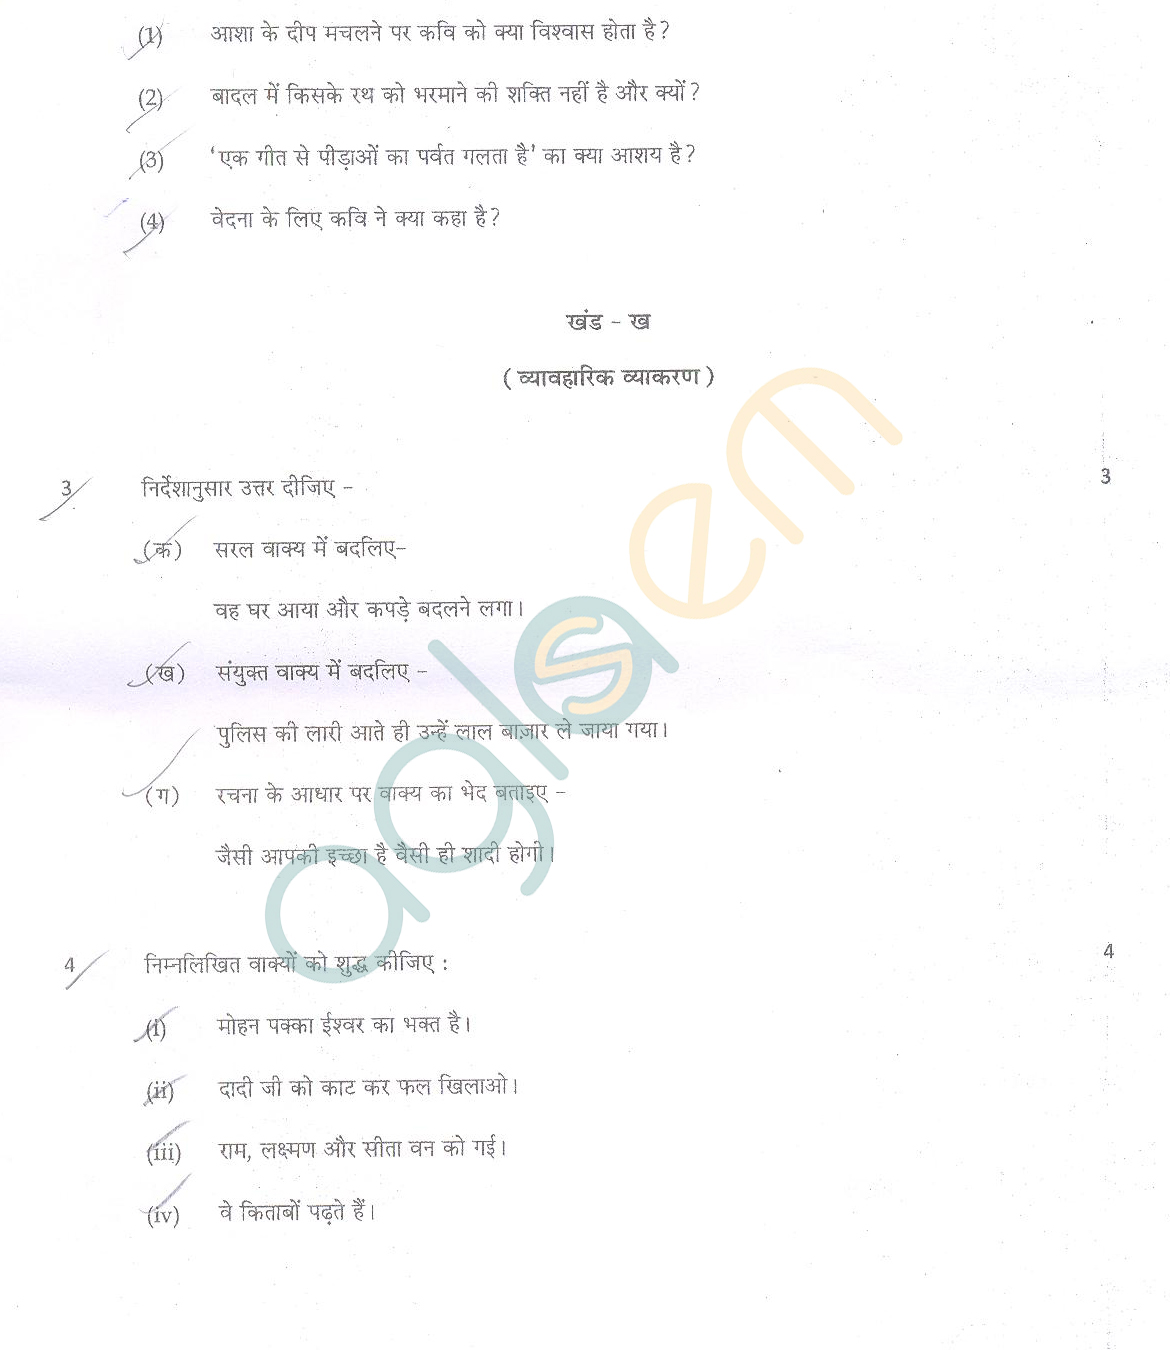 CBSE Class 10 SA2 Question Paper – Hindi